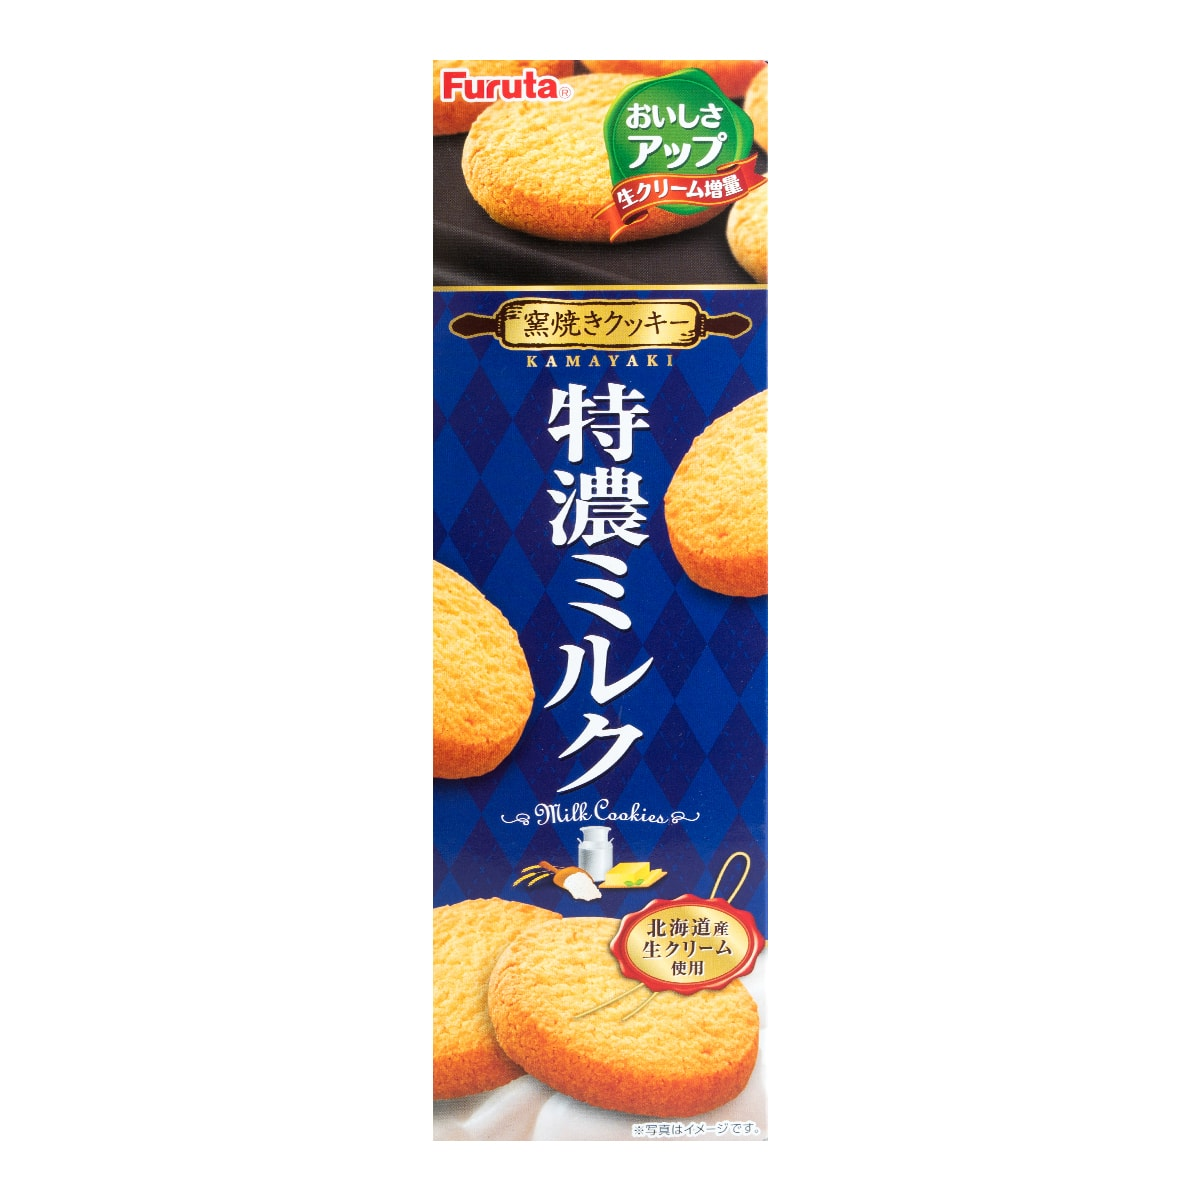 FURUTA Milk Cookies 76g